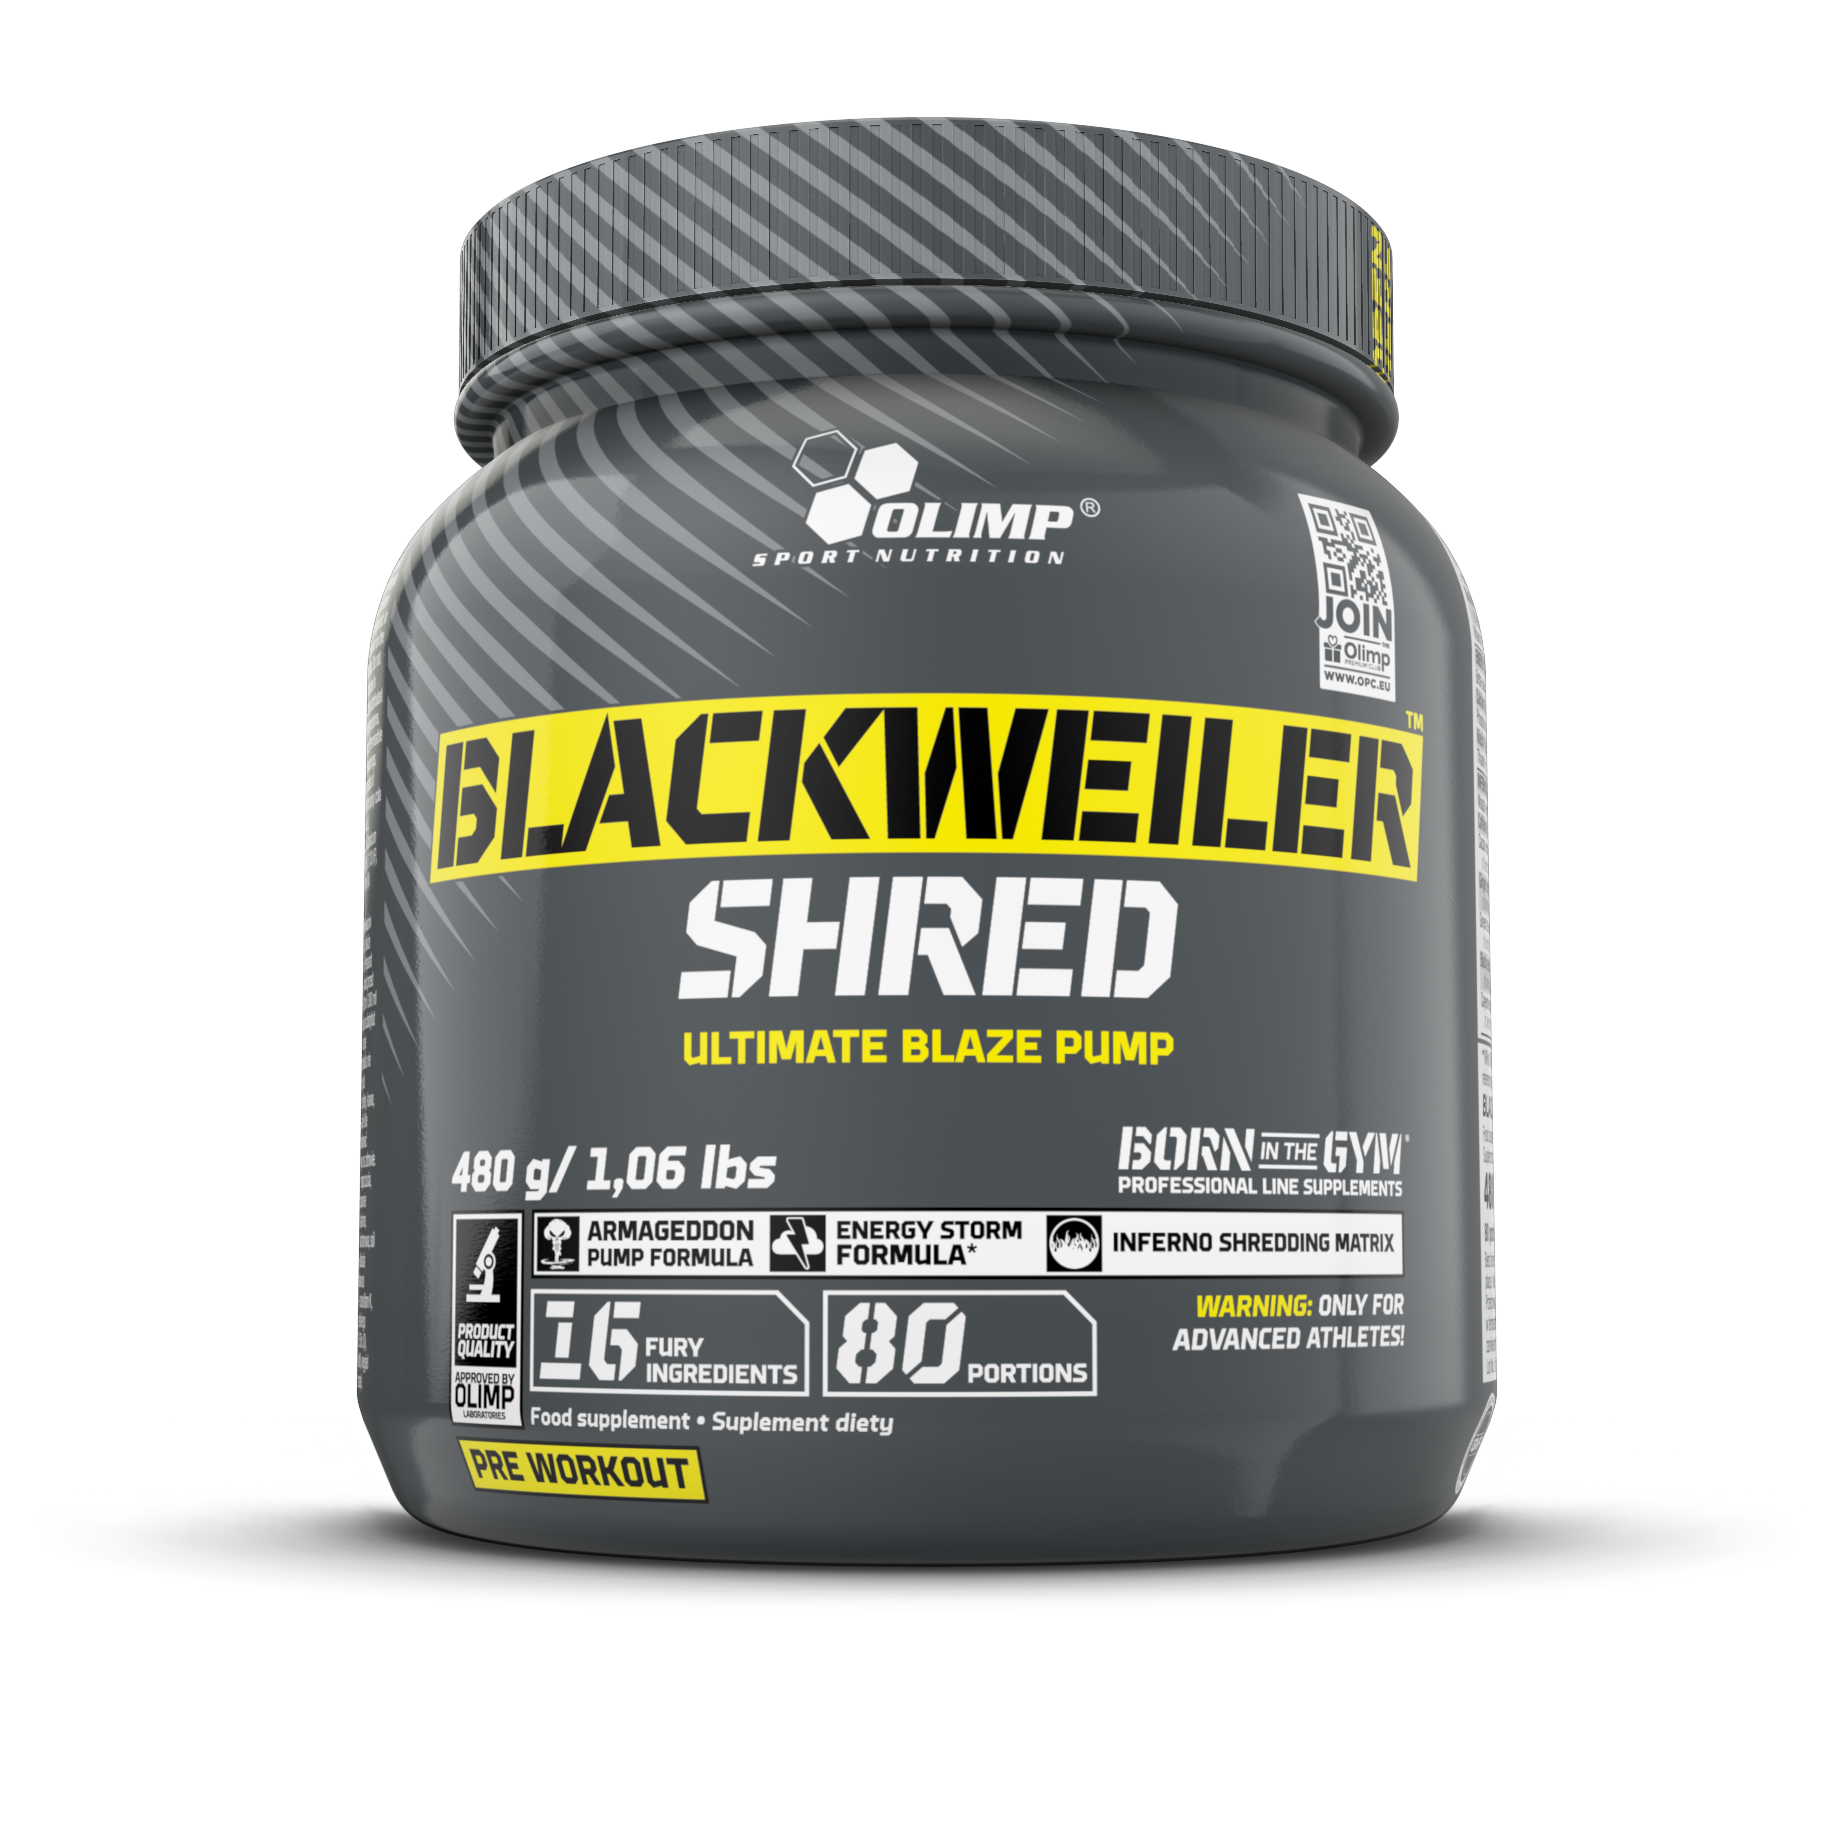 OLIMP BLACKWEILER SHRED, předtréninková směs, EXOTIC ORANGE, 480g